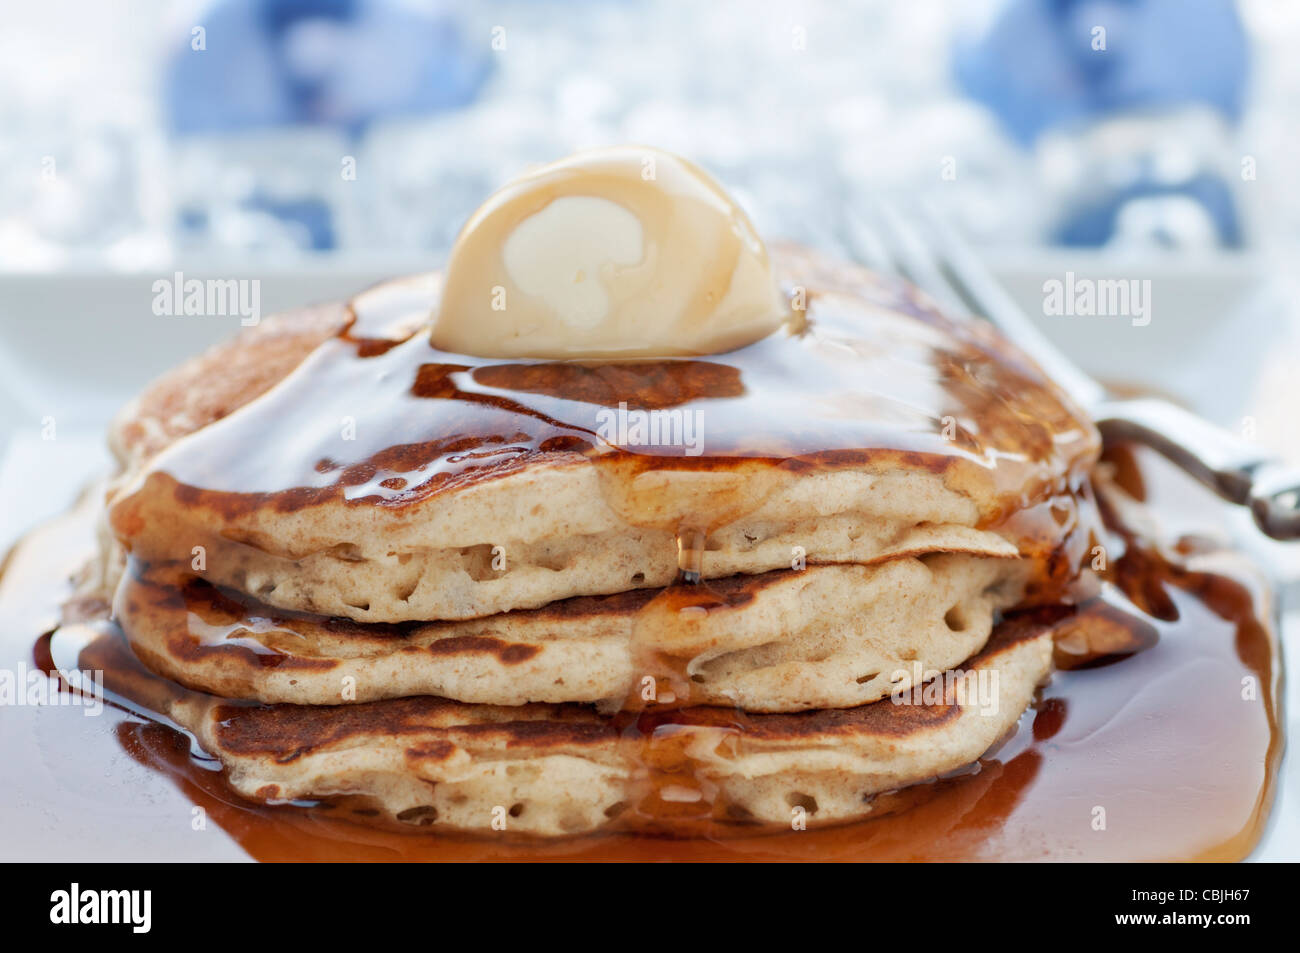 Fresh buttermilk pancakes with scoop of butter on white plate - Stock Image